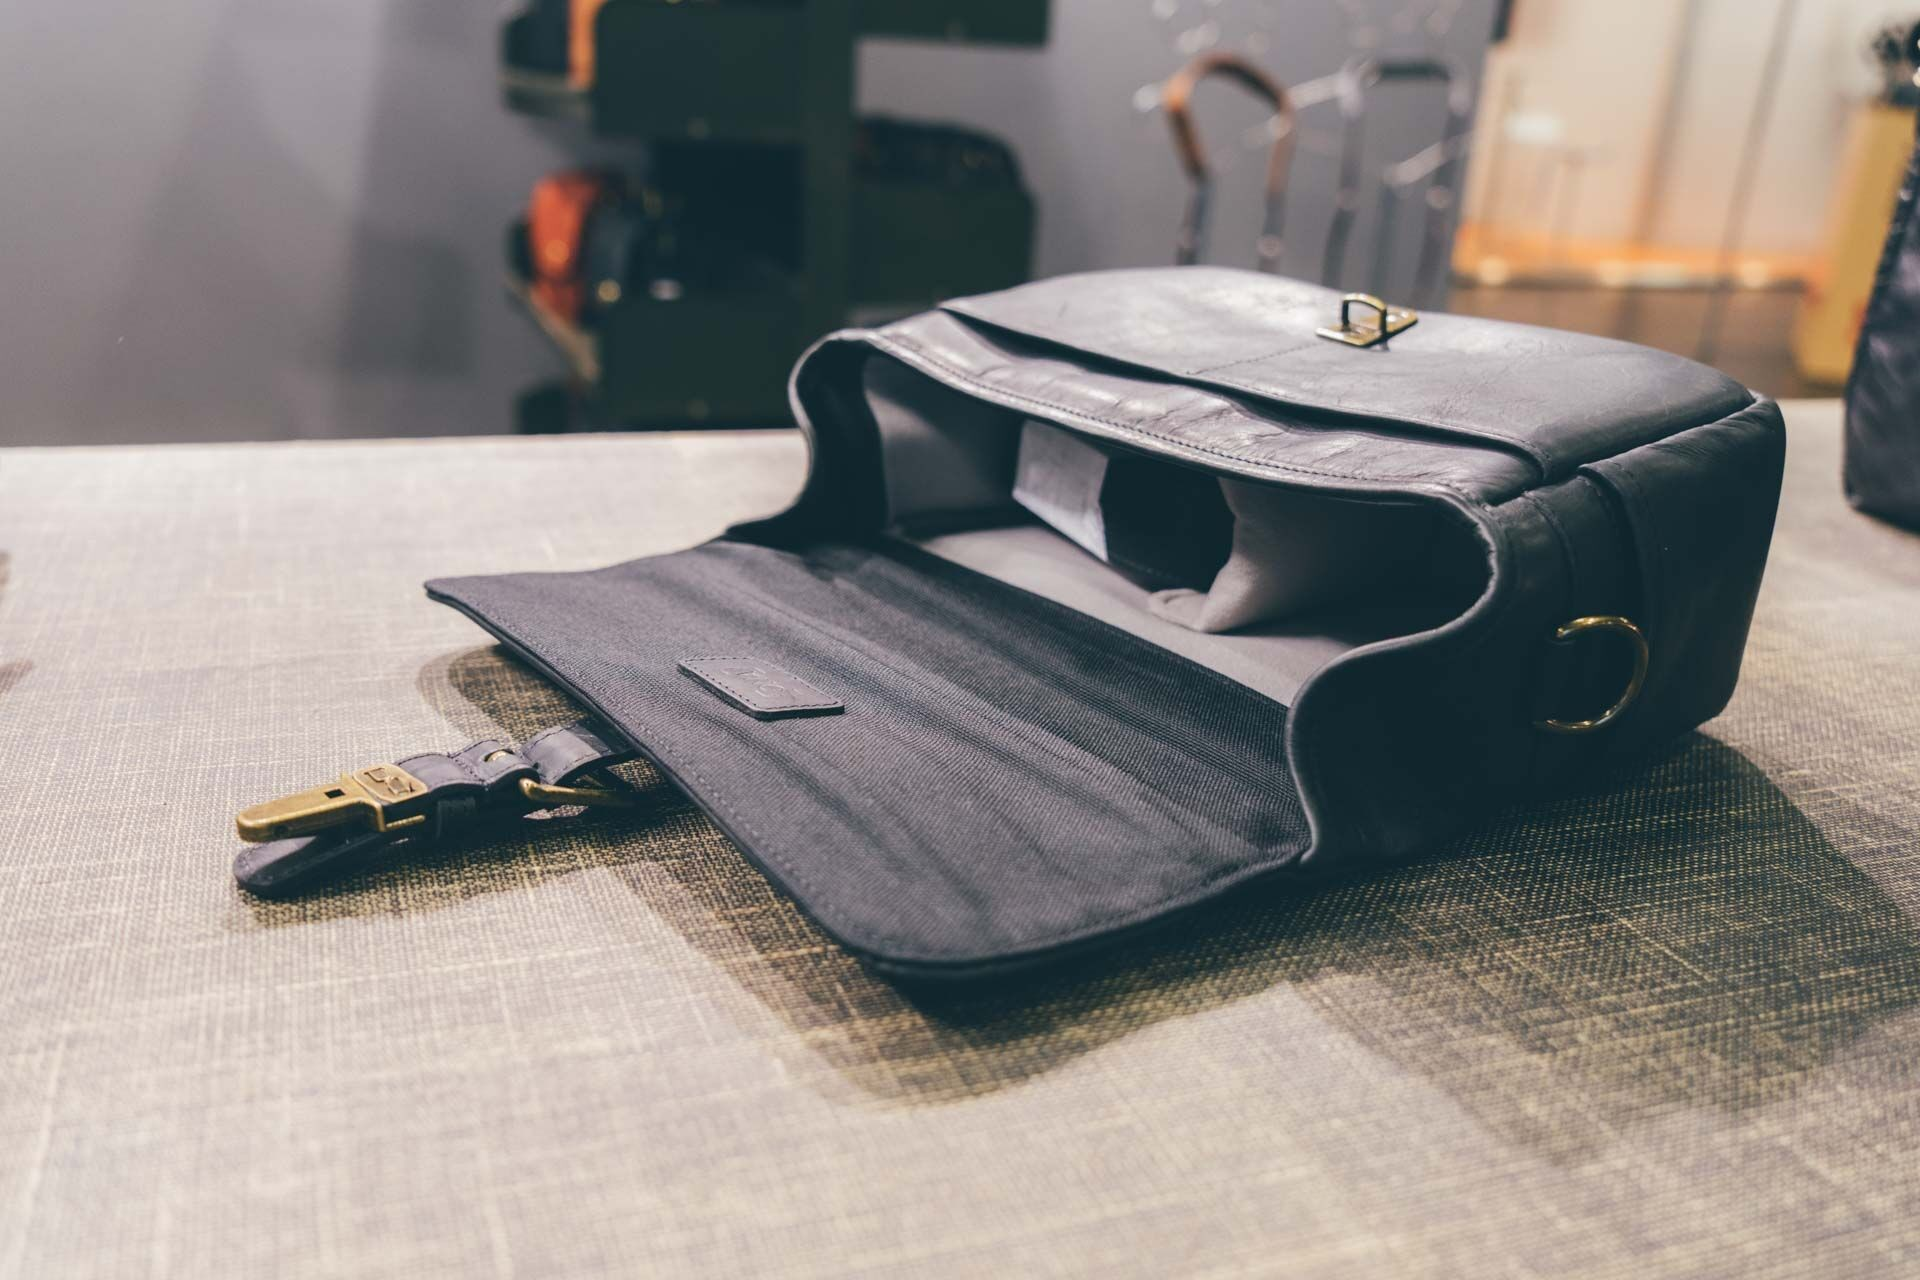 All of the new black leather bags feature black interiors with gray padded dividers.